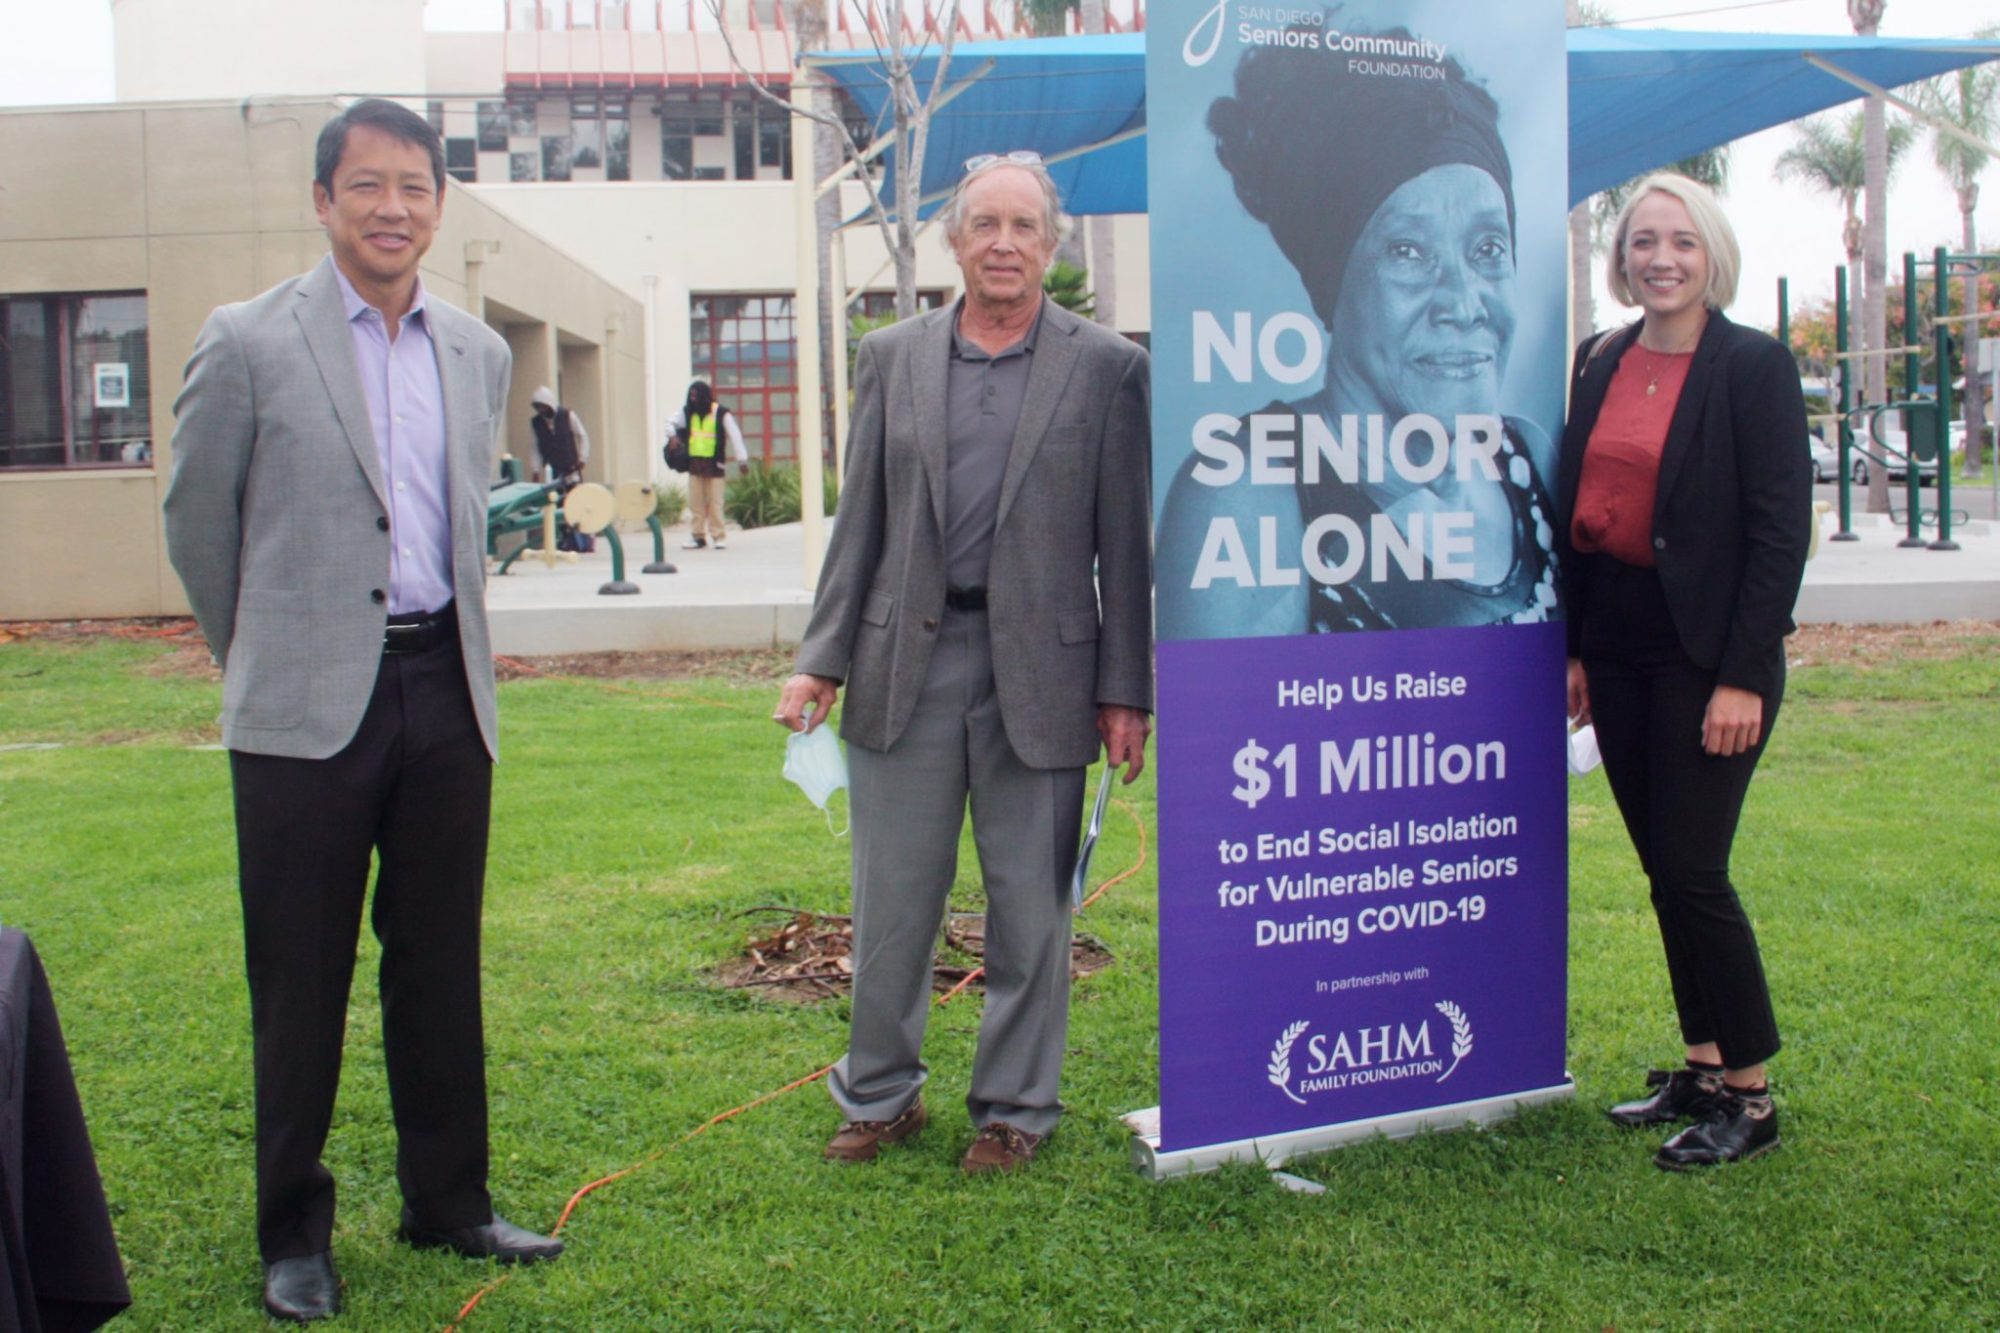 Ted Chan, Bob Kelly, and Abigail Sahm stand next to a banner for the $1 Million No Senior Alone campaign